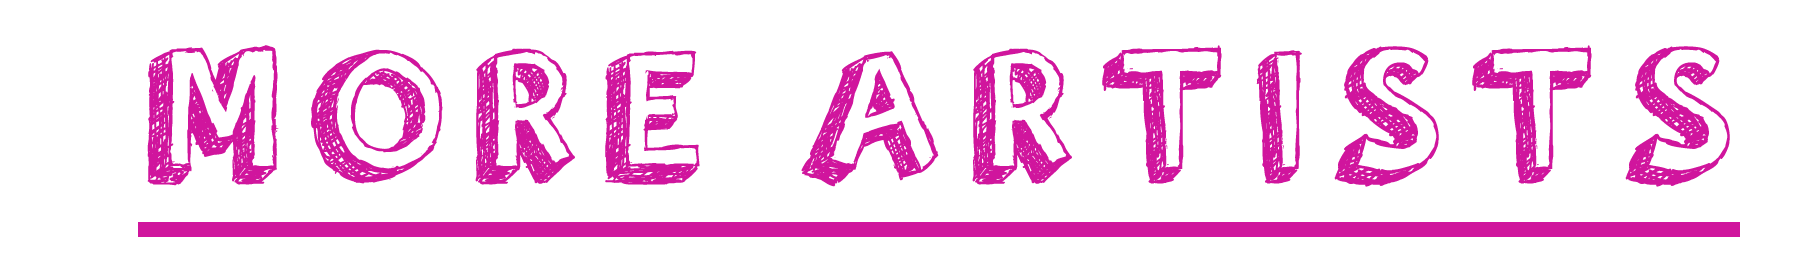 more-atirts.png